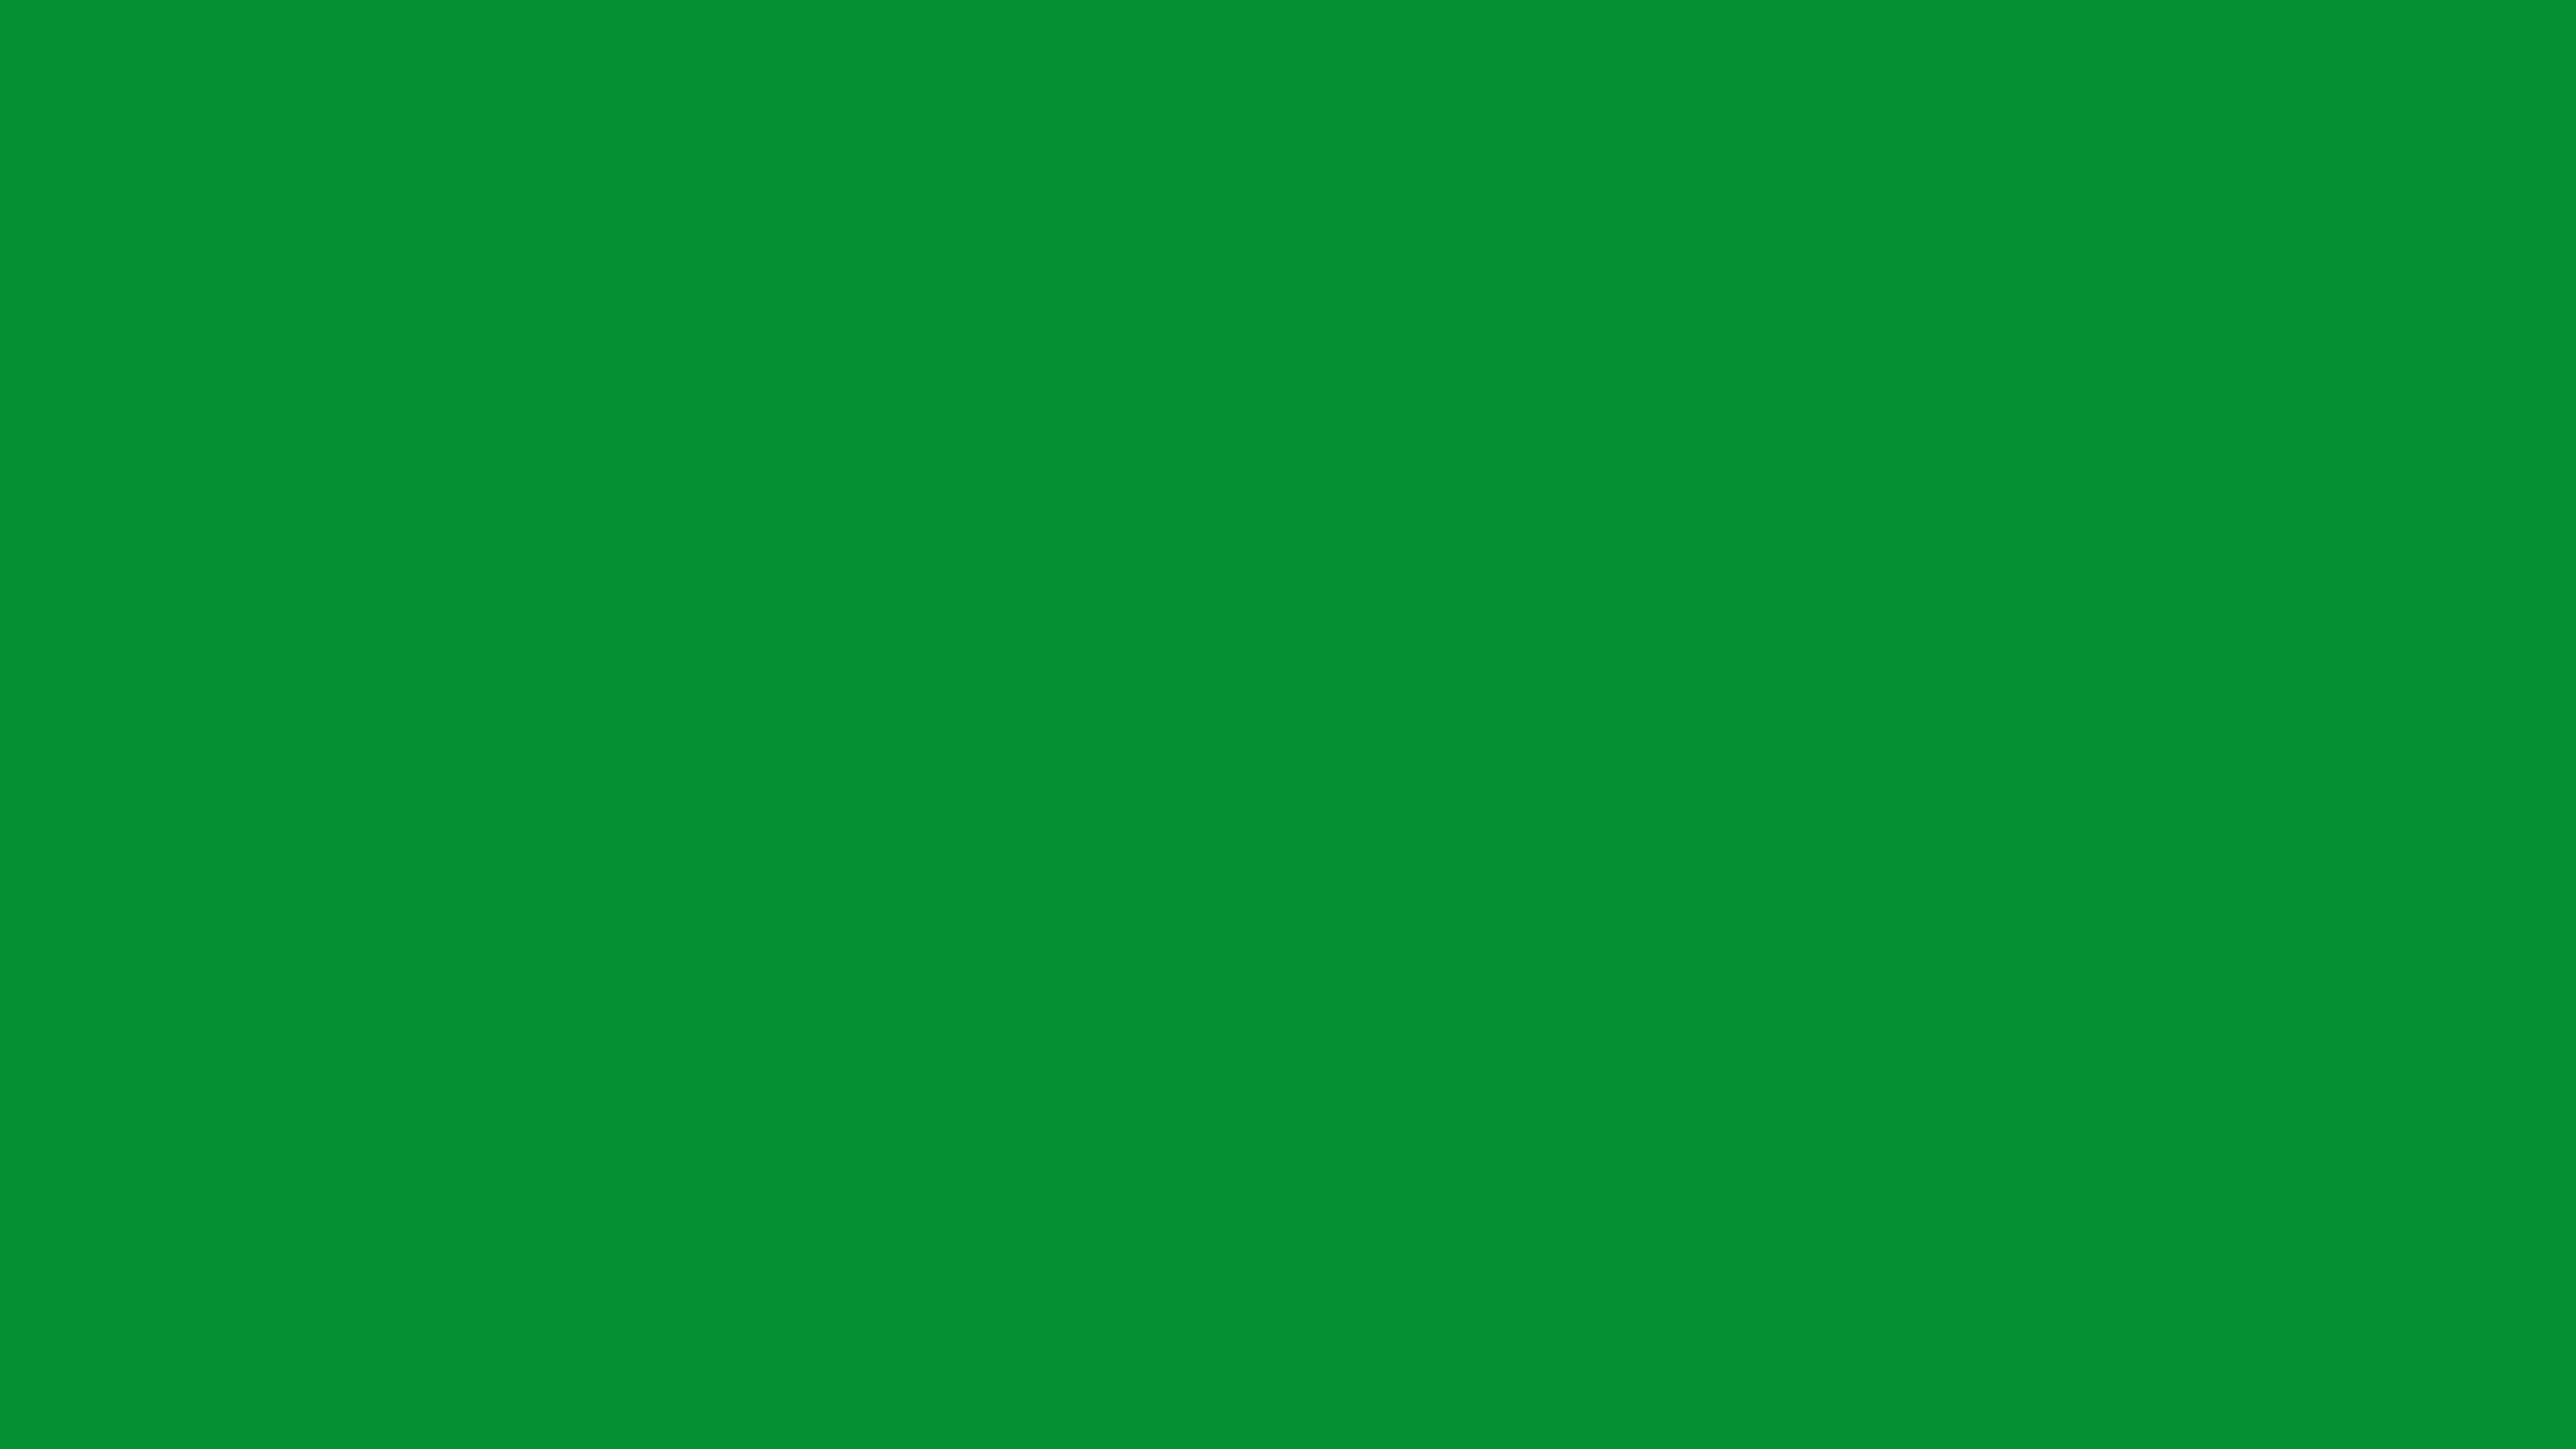 4096x2304 North Texas Green Solid Color Background